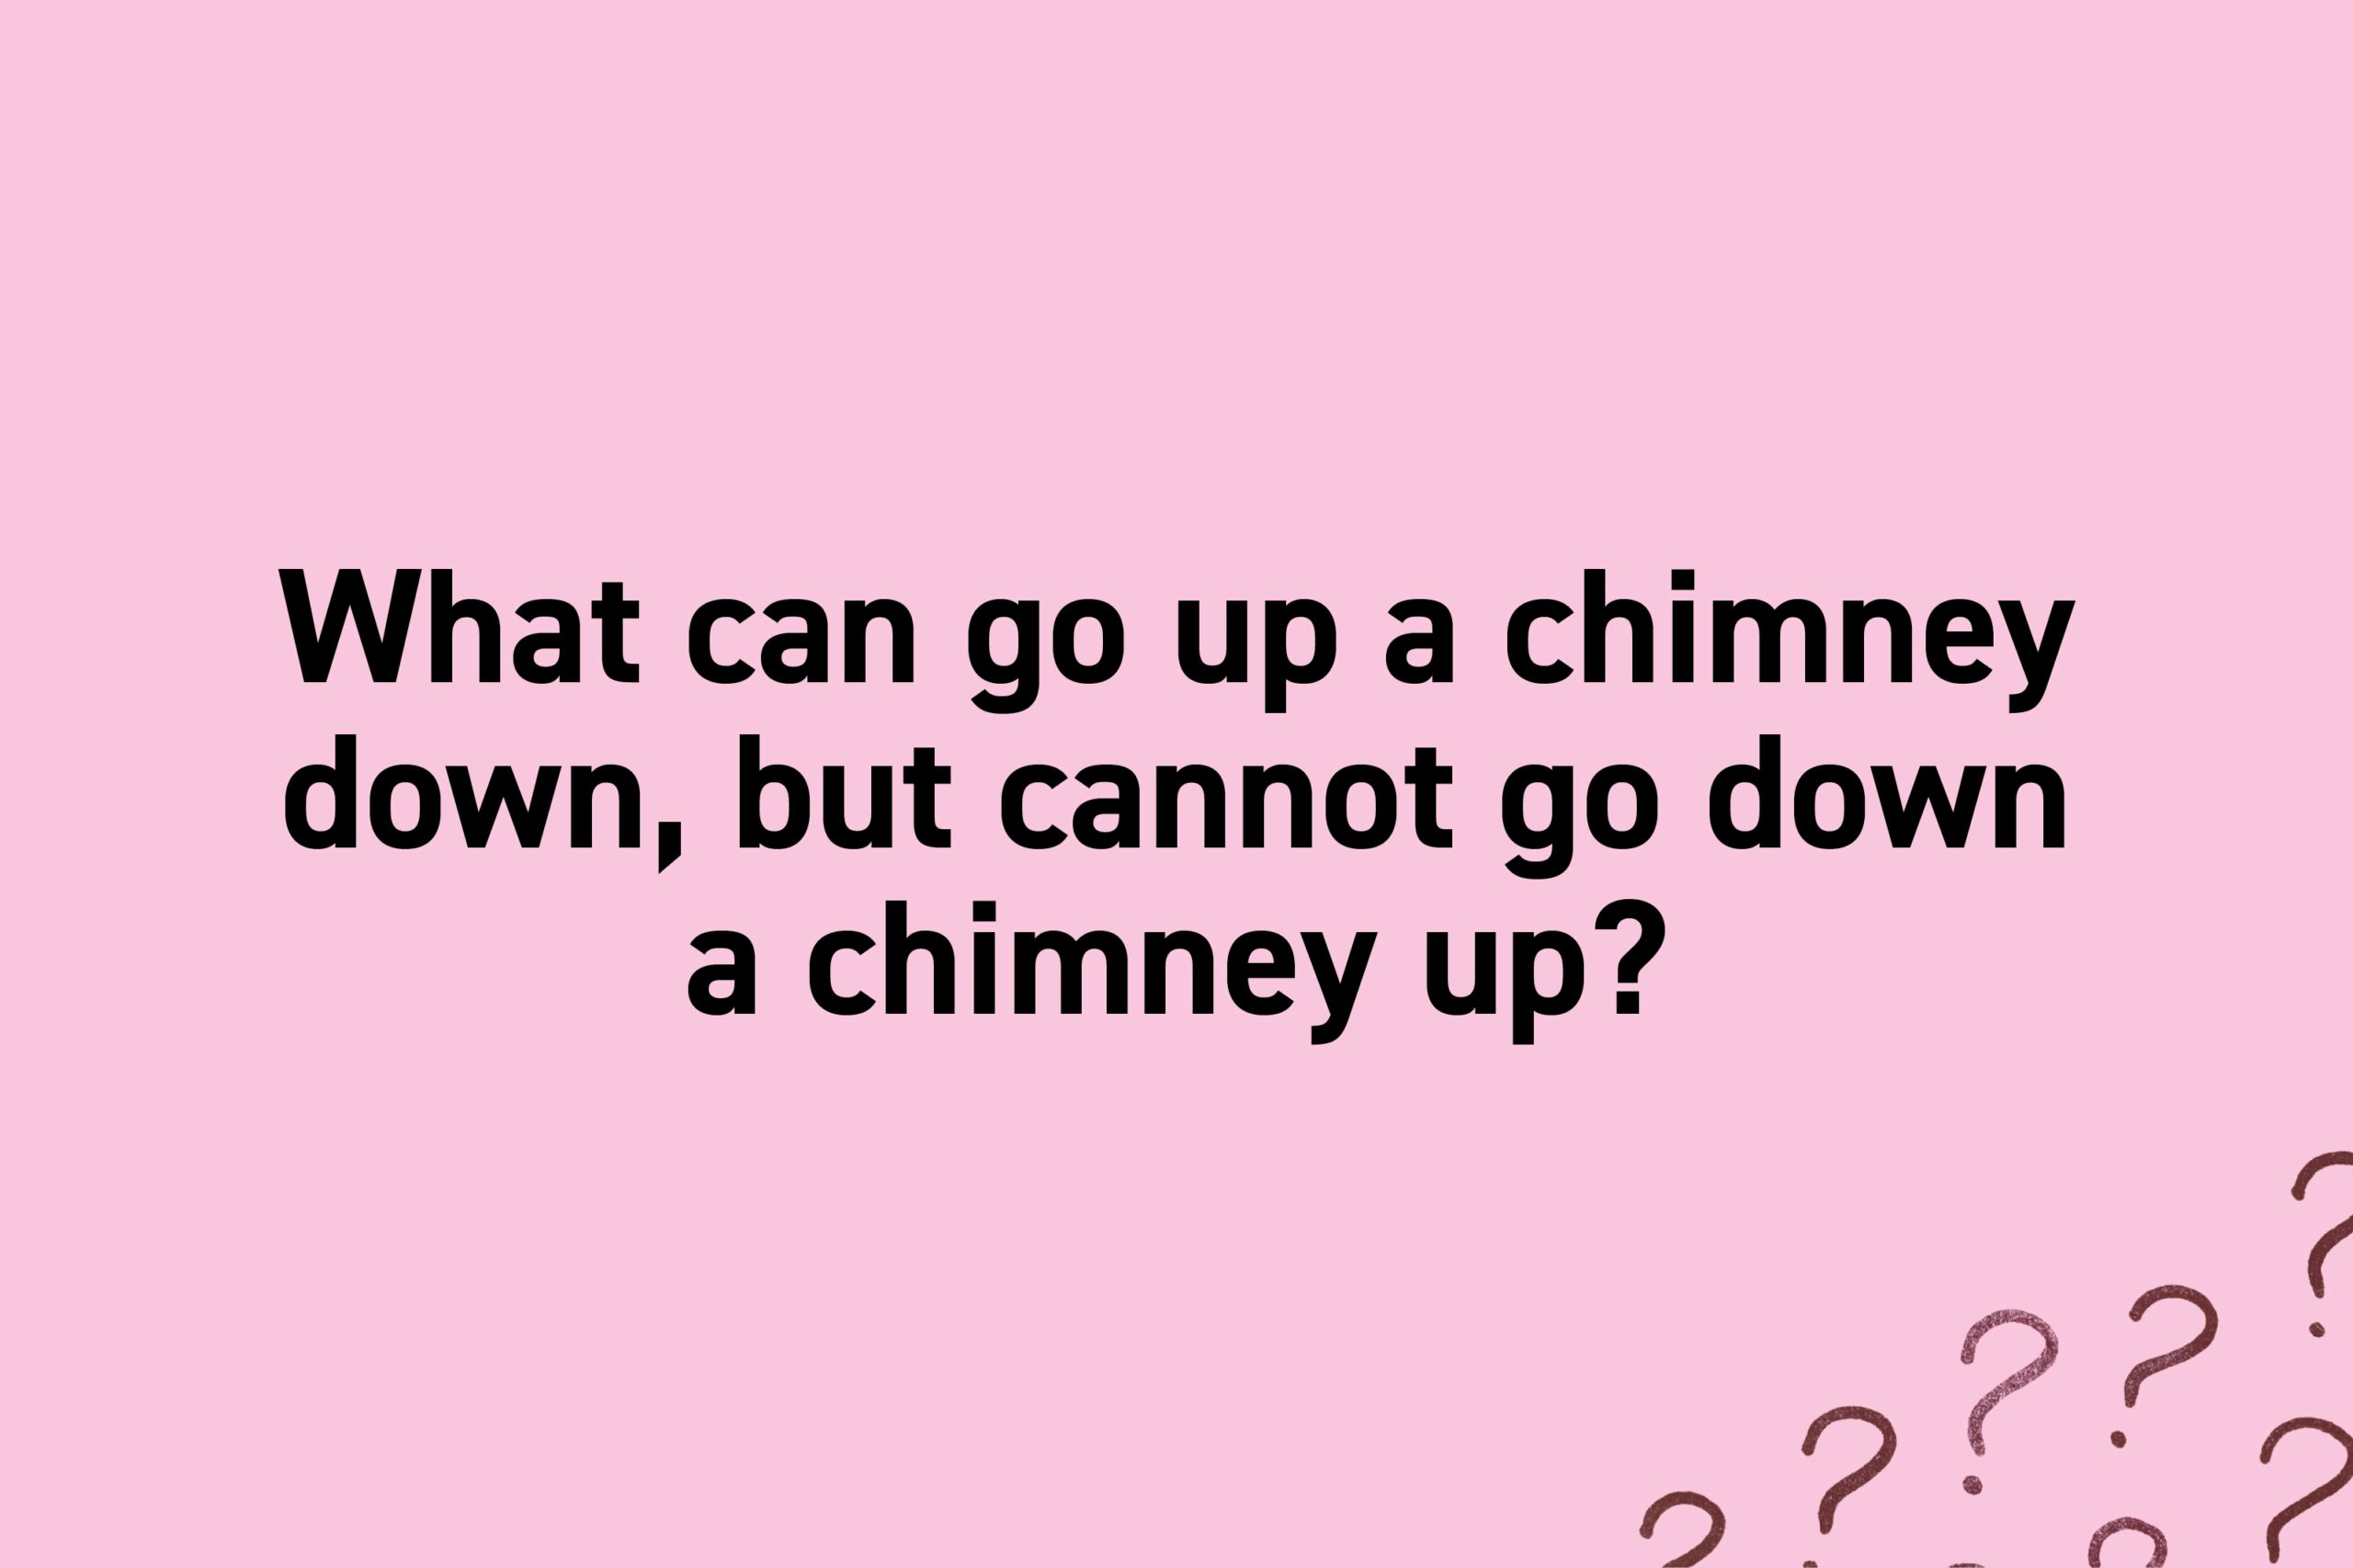 What can go up a chimney down, but cannot go down a chimney up?